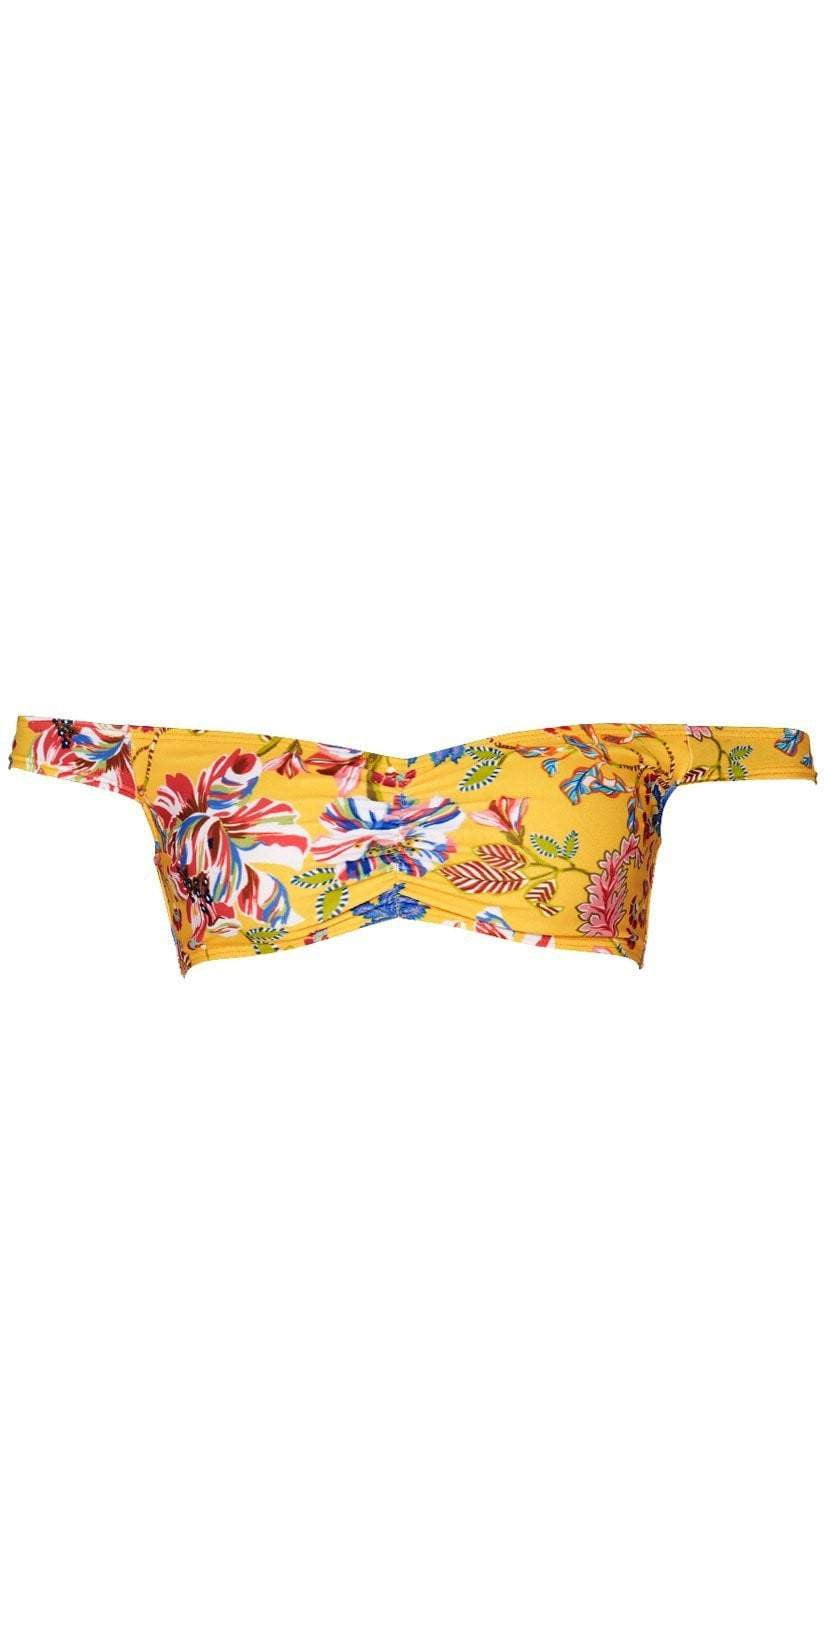 L Space Pacific Bloom Ziggy Top in Sunshine Gold PBZGT18-SUG flat lay top